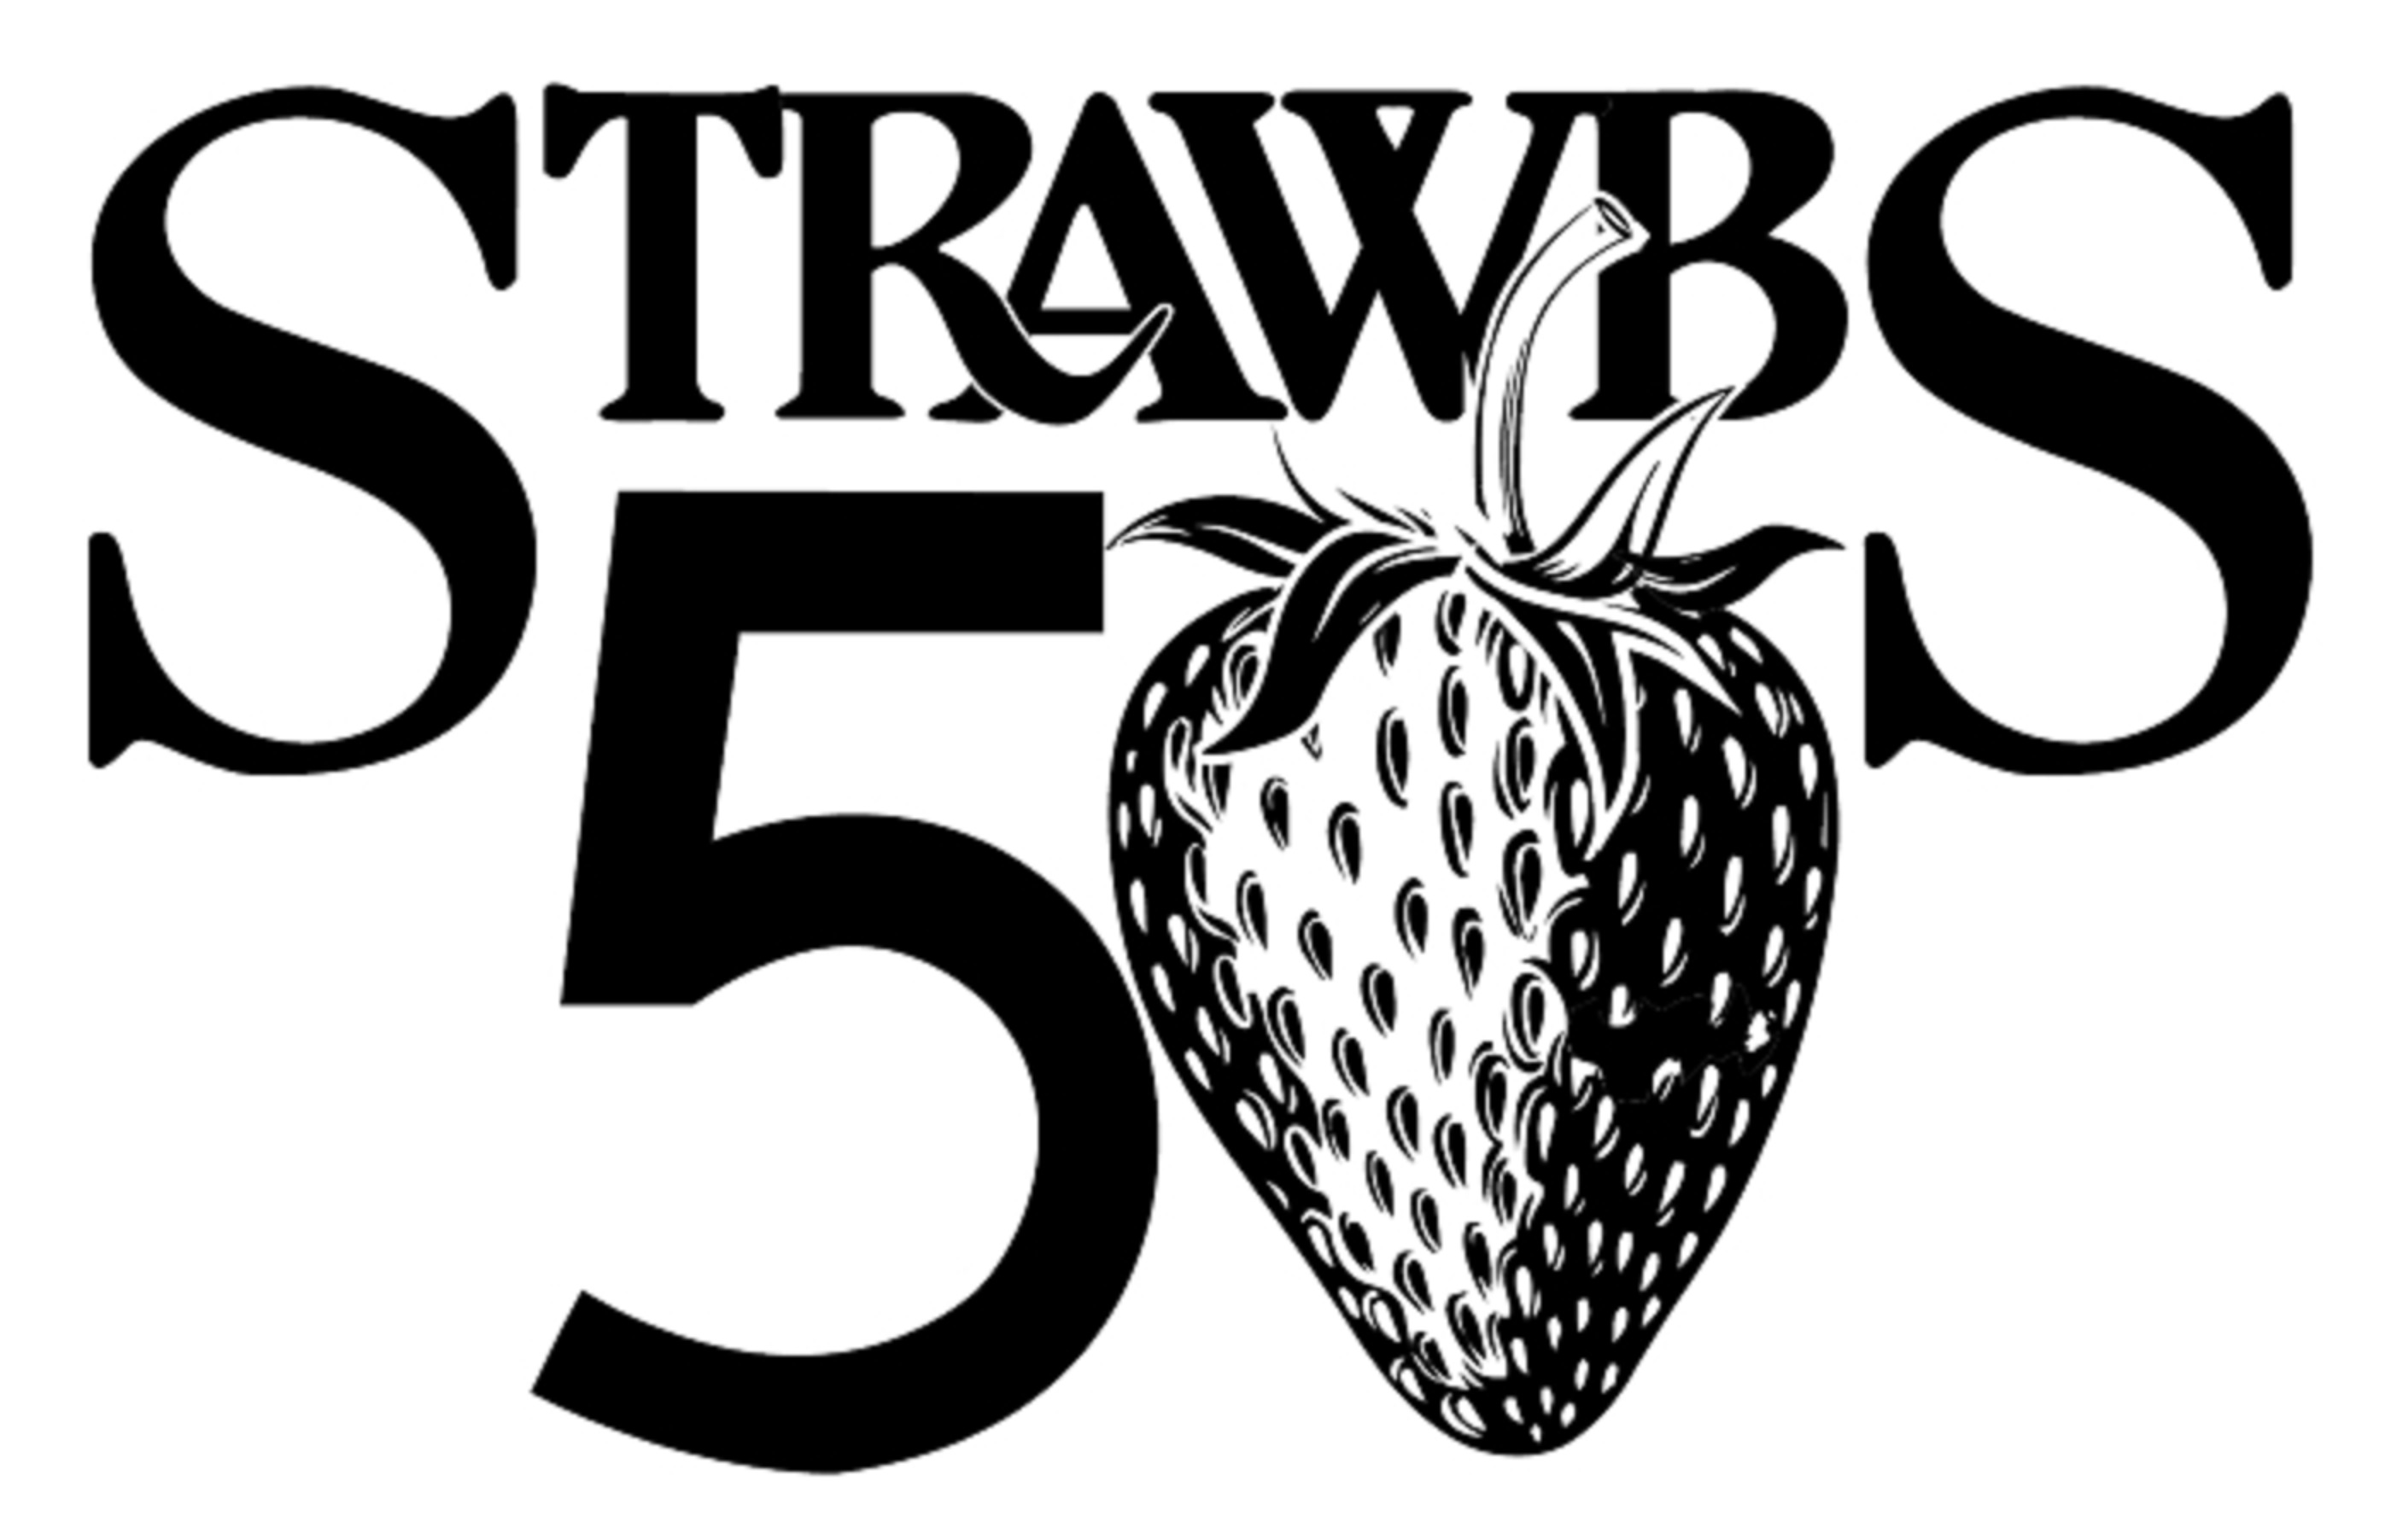 Strawbs 50th Anniversary 3 Days Celebration in Lakewood, NJ